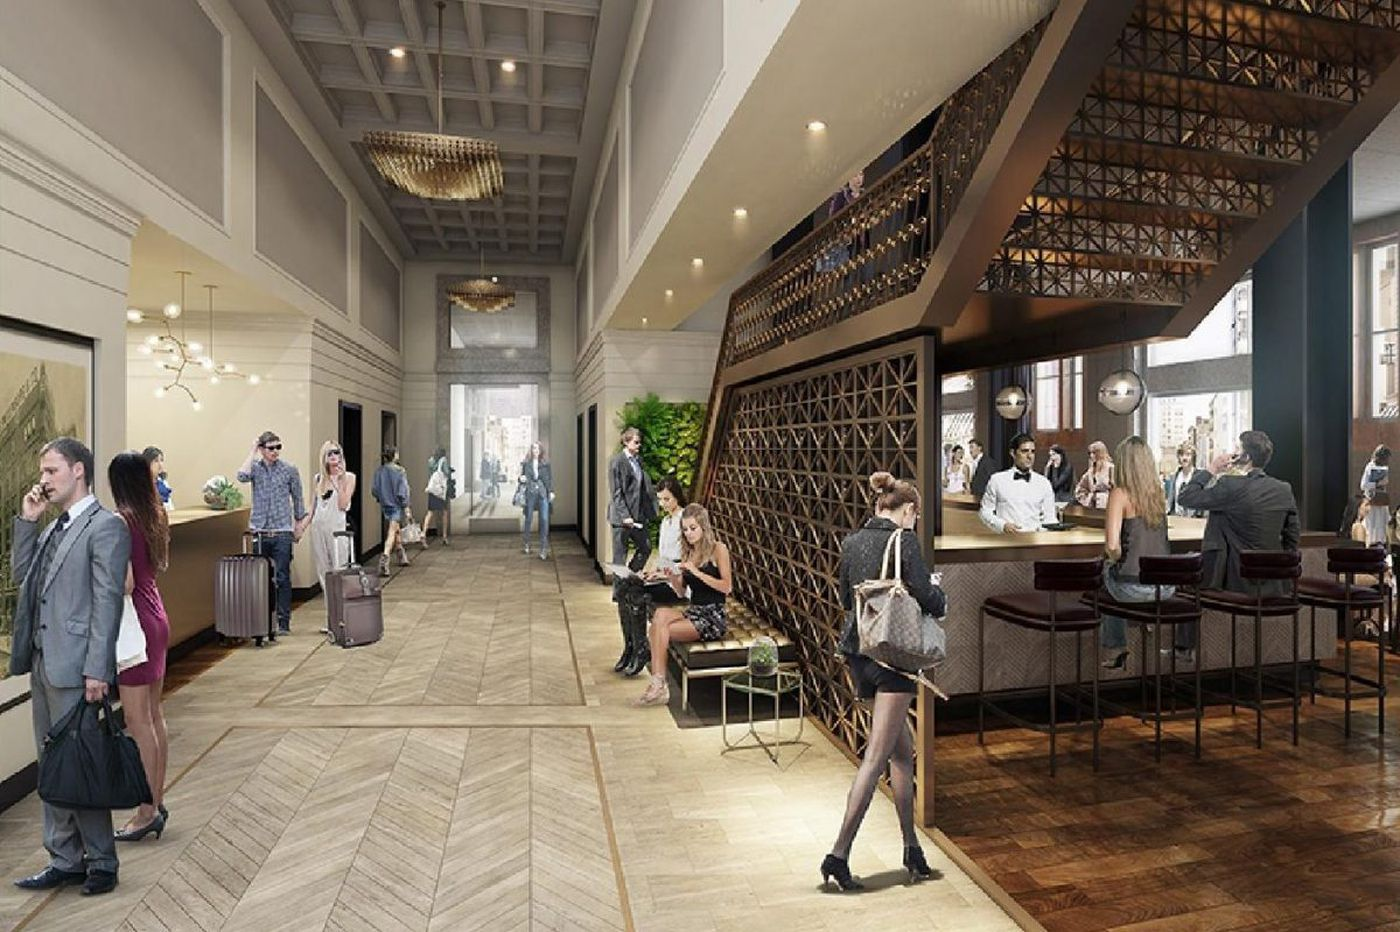 Center City's historic Stephen Girard Building to become hotel under Hilton's Canopy brand